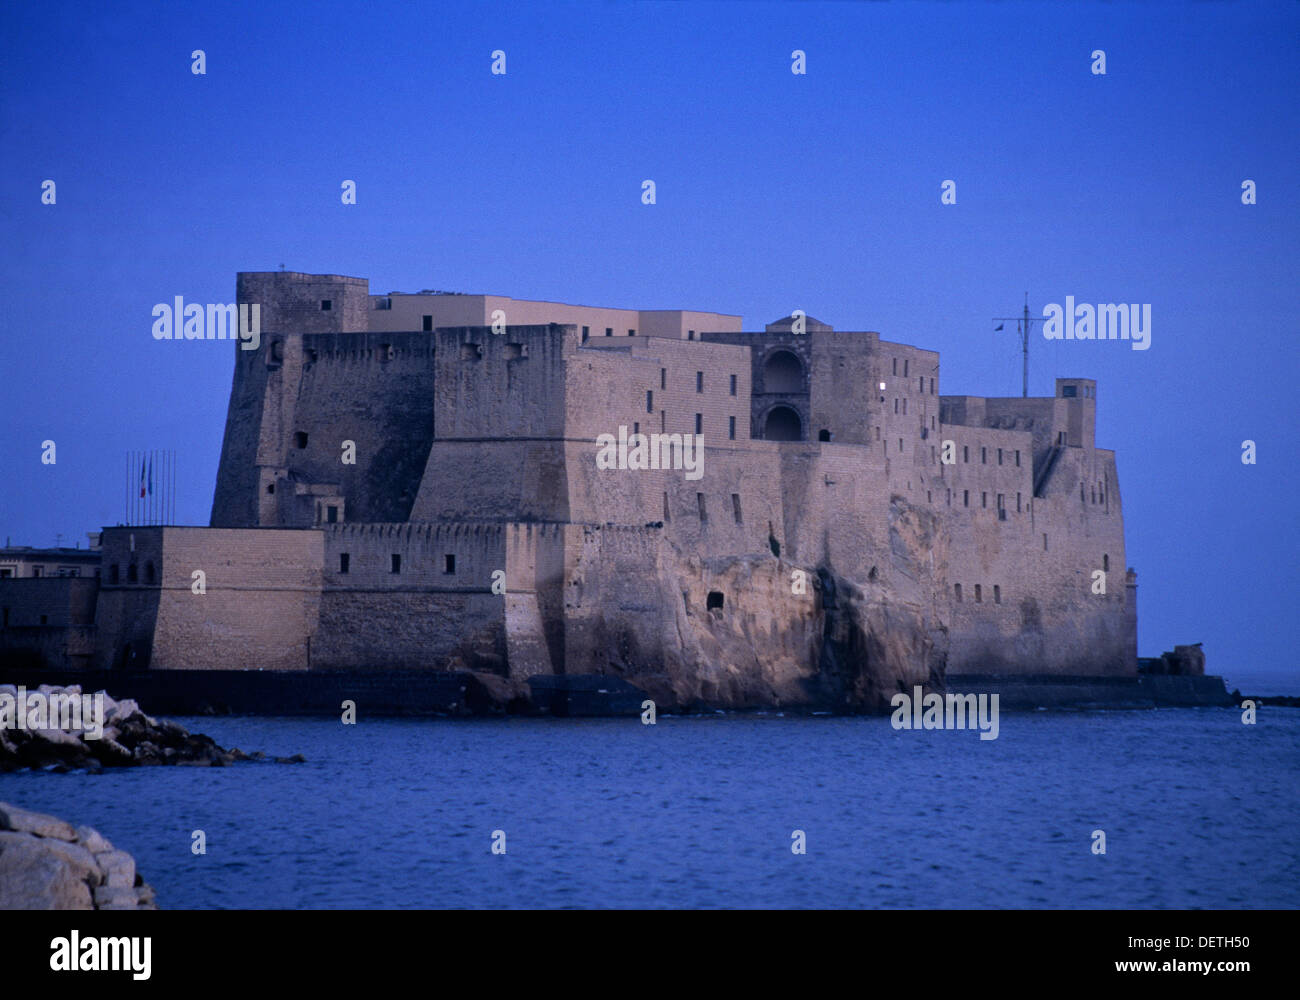 Castel dell'Ovo (1154) located on a small island in Naples - Stock Image